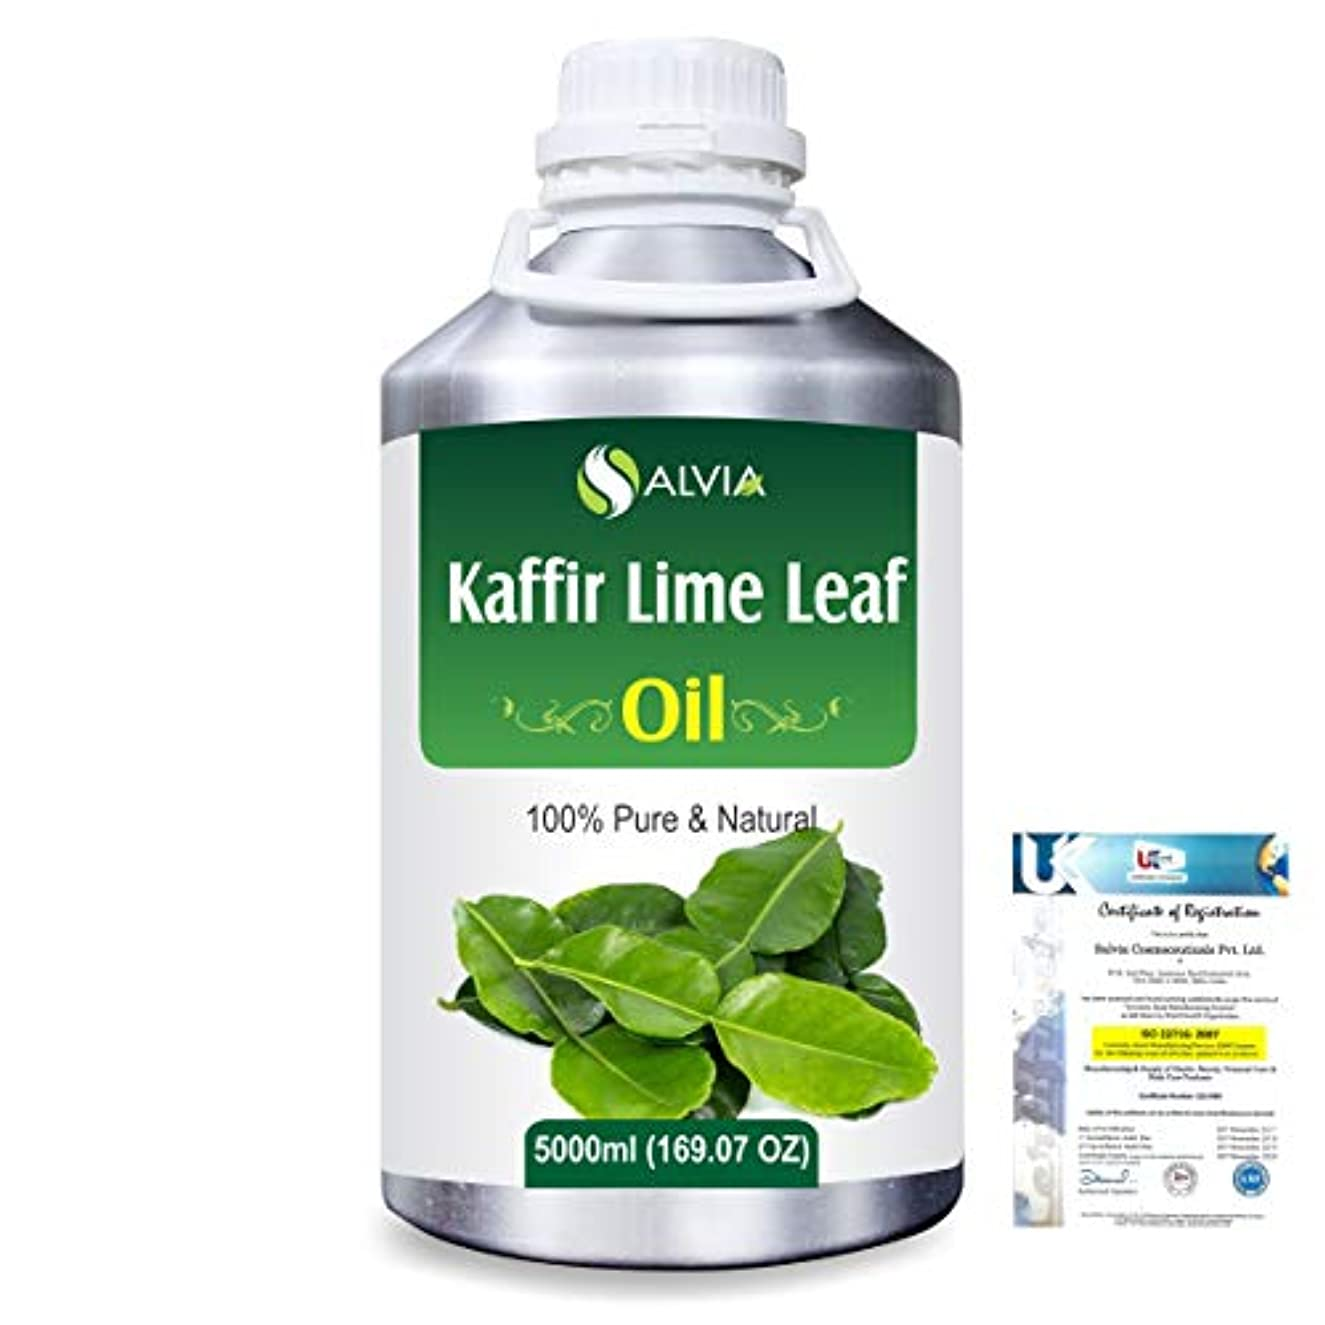 シニスリビングルームつまらないKaffir Lime Leaf (Citrus Hystrix) 100% Natural Pure Essential Oil 5000ml/169fl.oz.